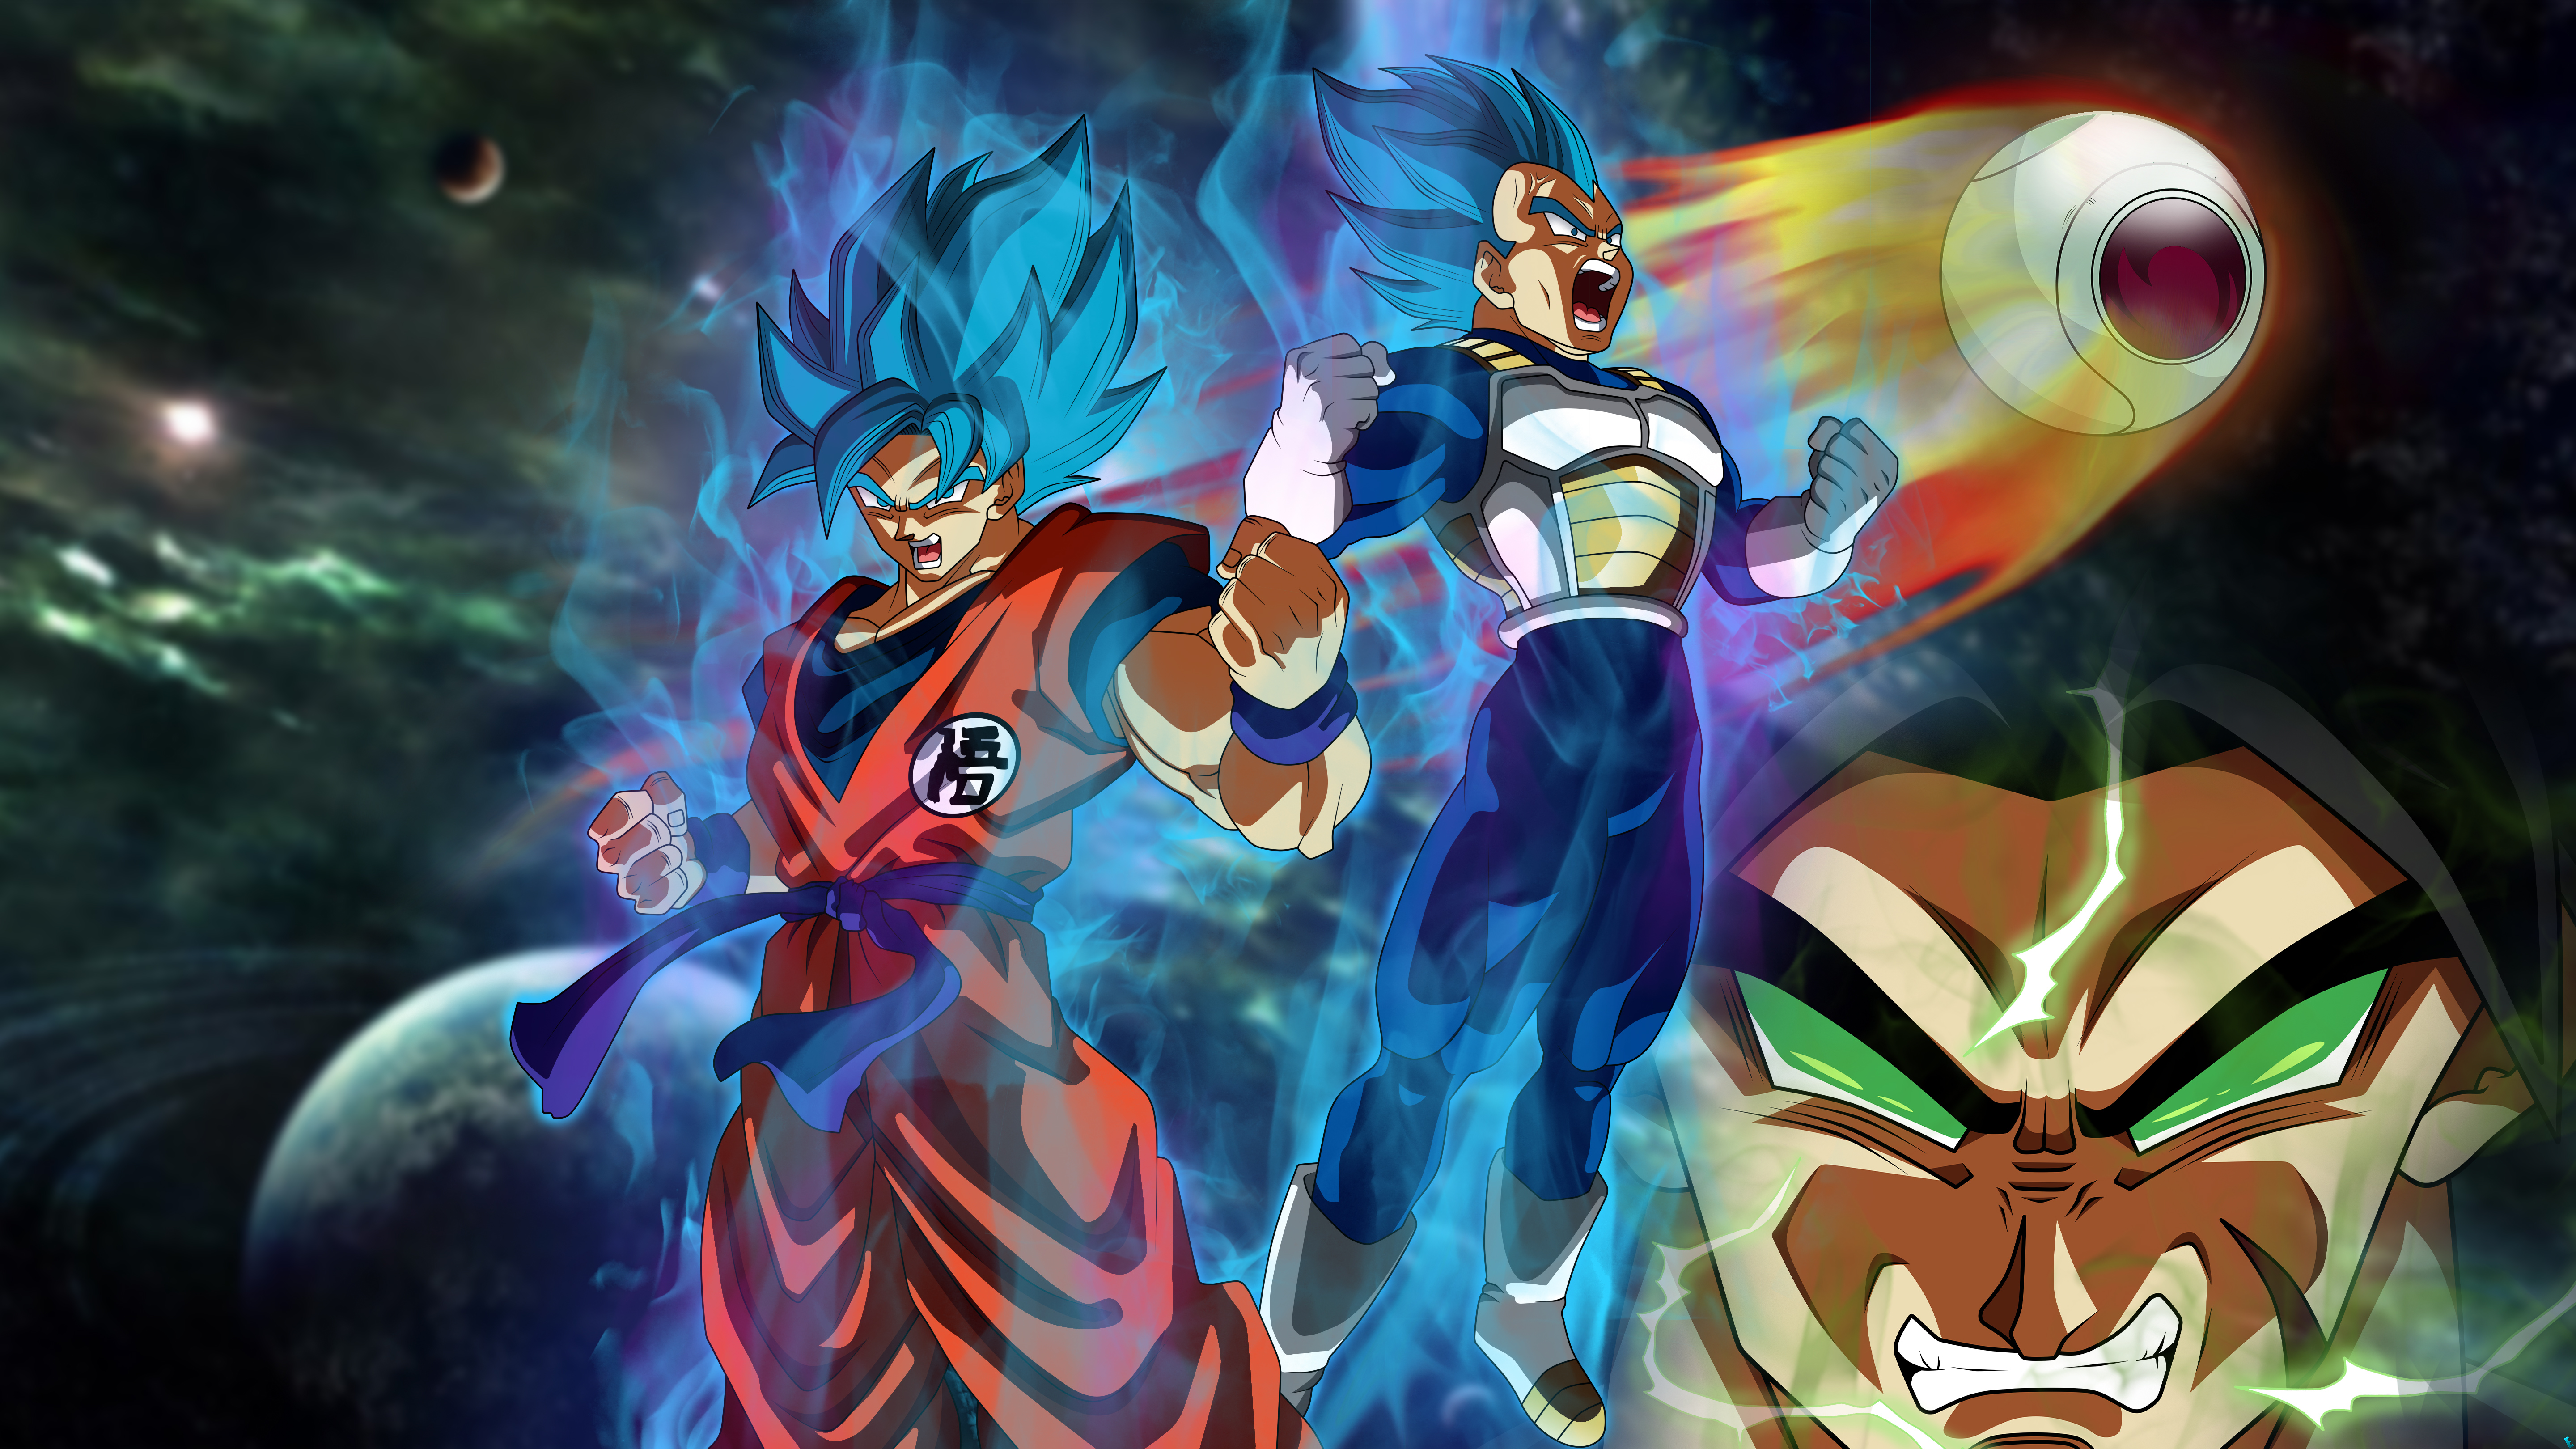 Goku And Vegeta Wallpaper 4k 5760x3240 Download Hd Wallpaper Wallpapertip